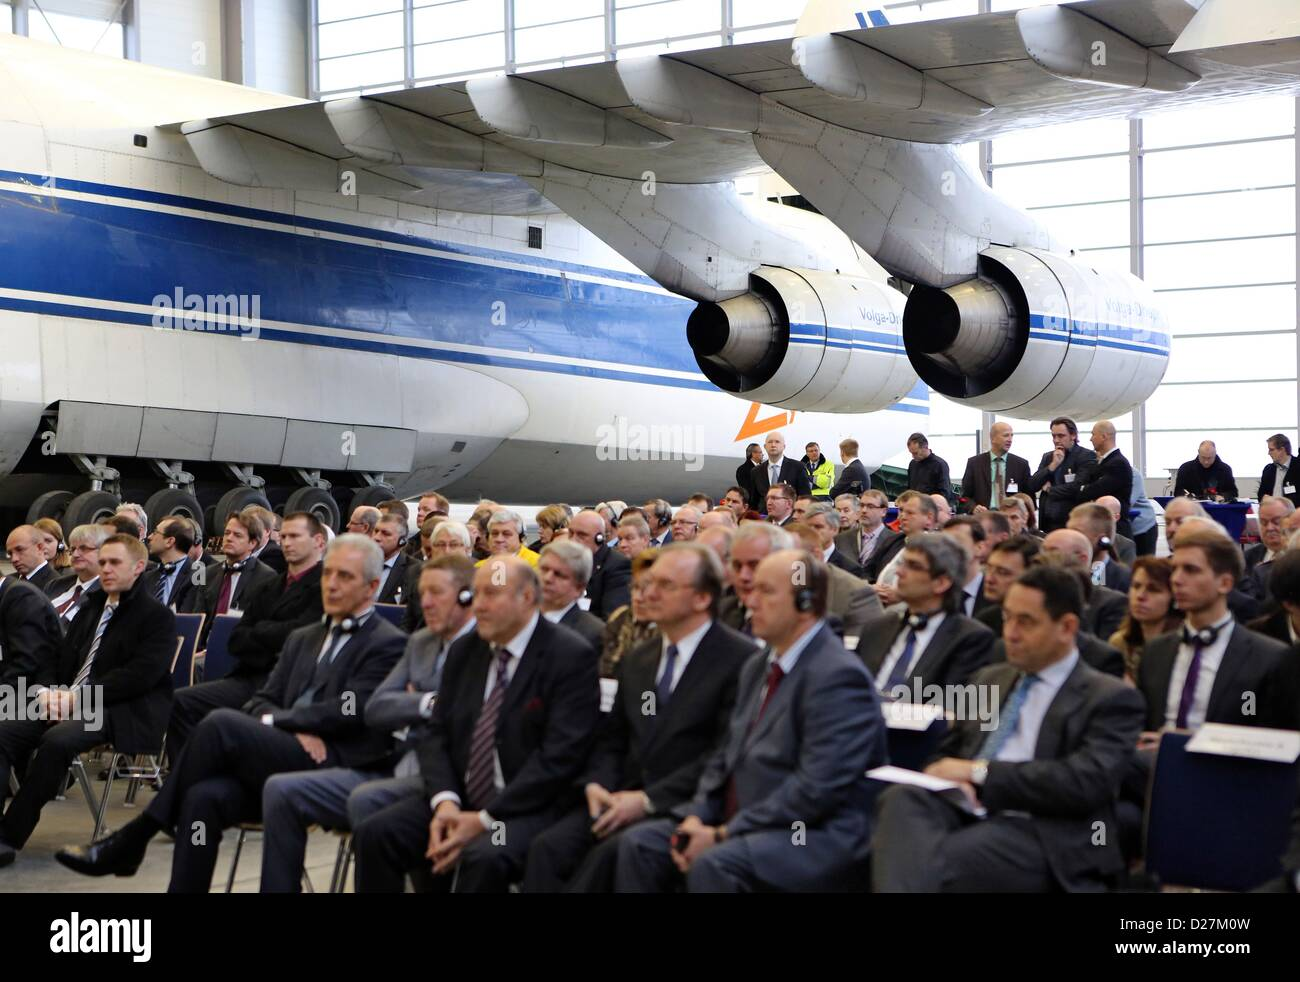 Leipzig/Halle in Schkeuditz, Germany, 16th January 2013. People sit in front of a Antonov 124 during the opening Stock Photo